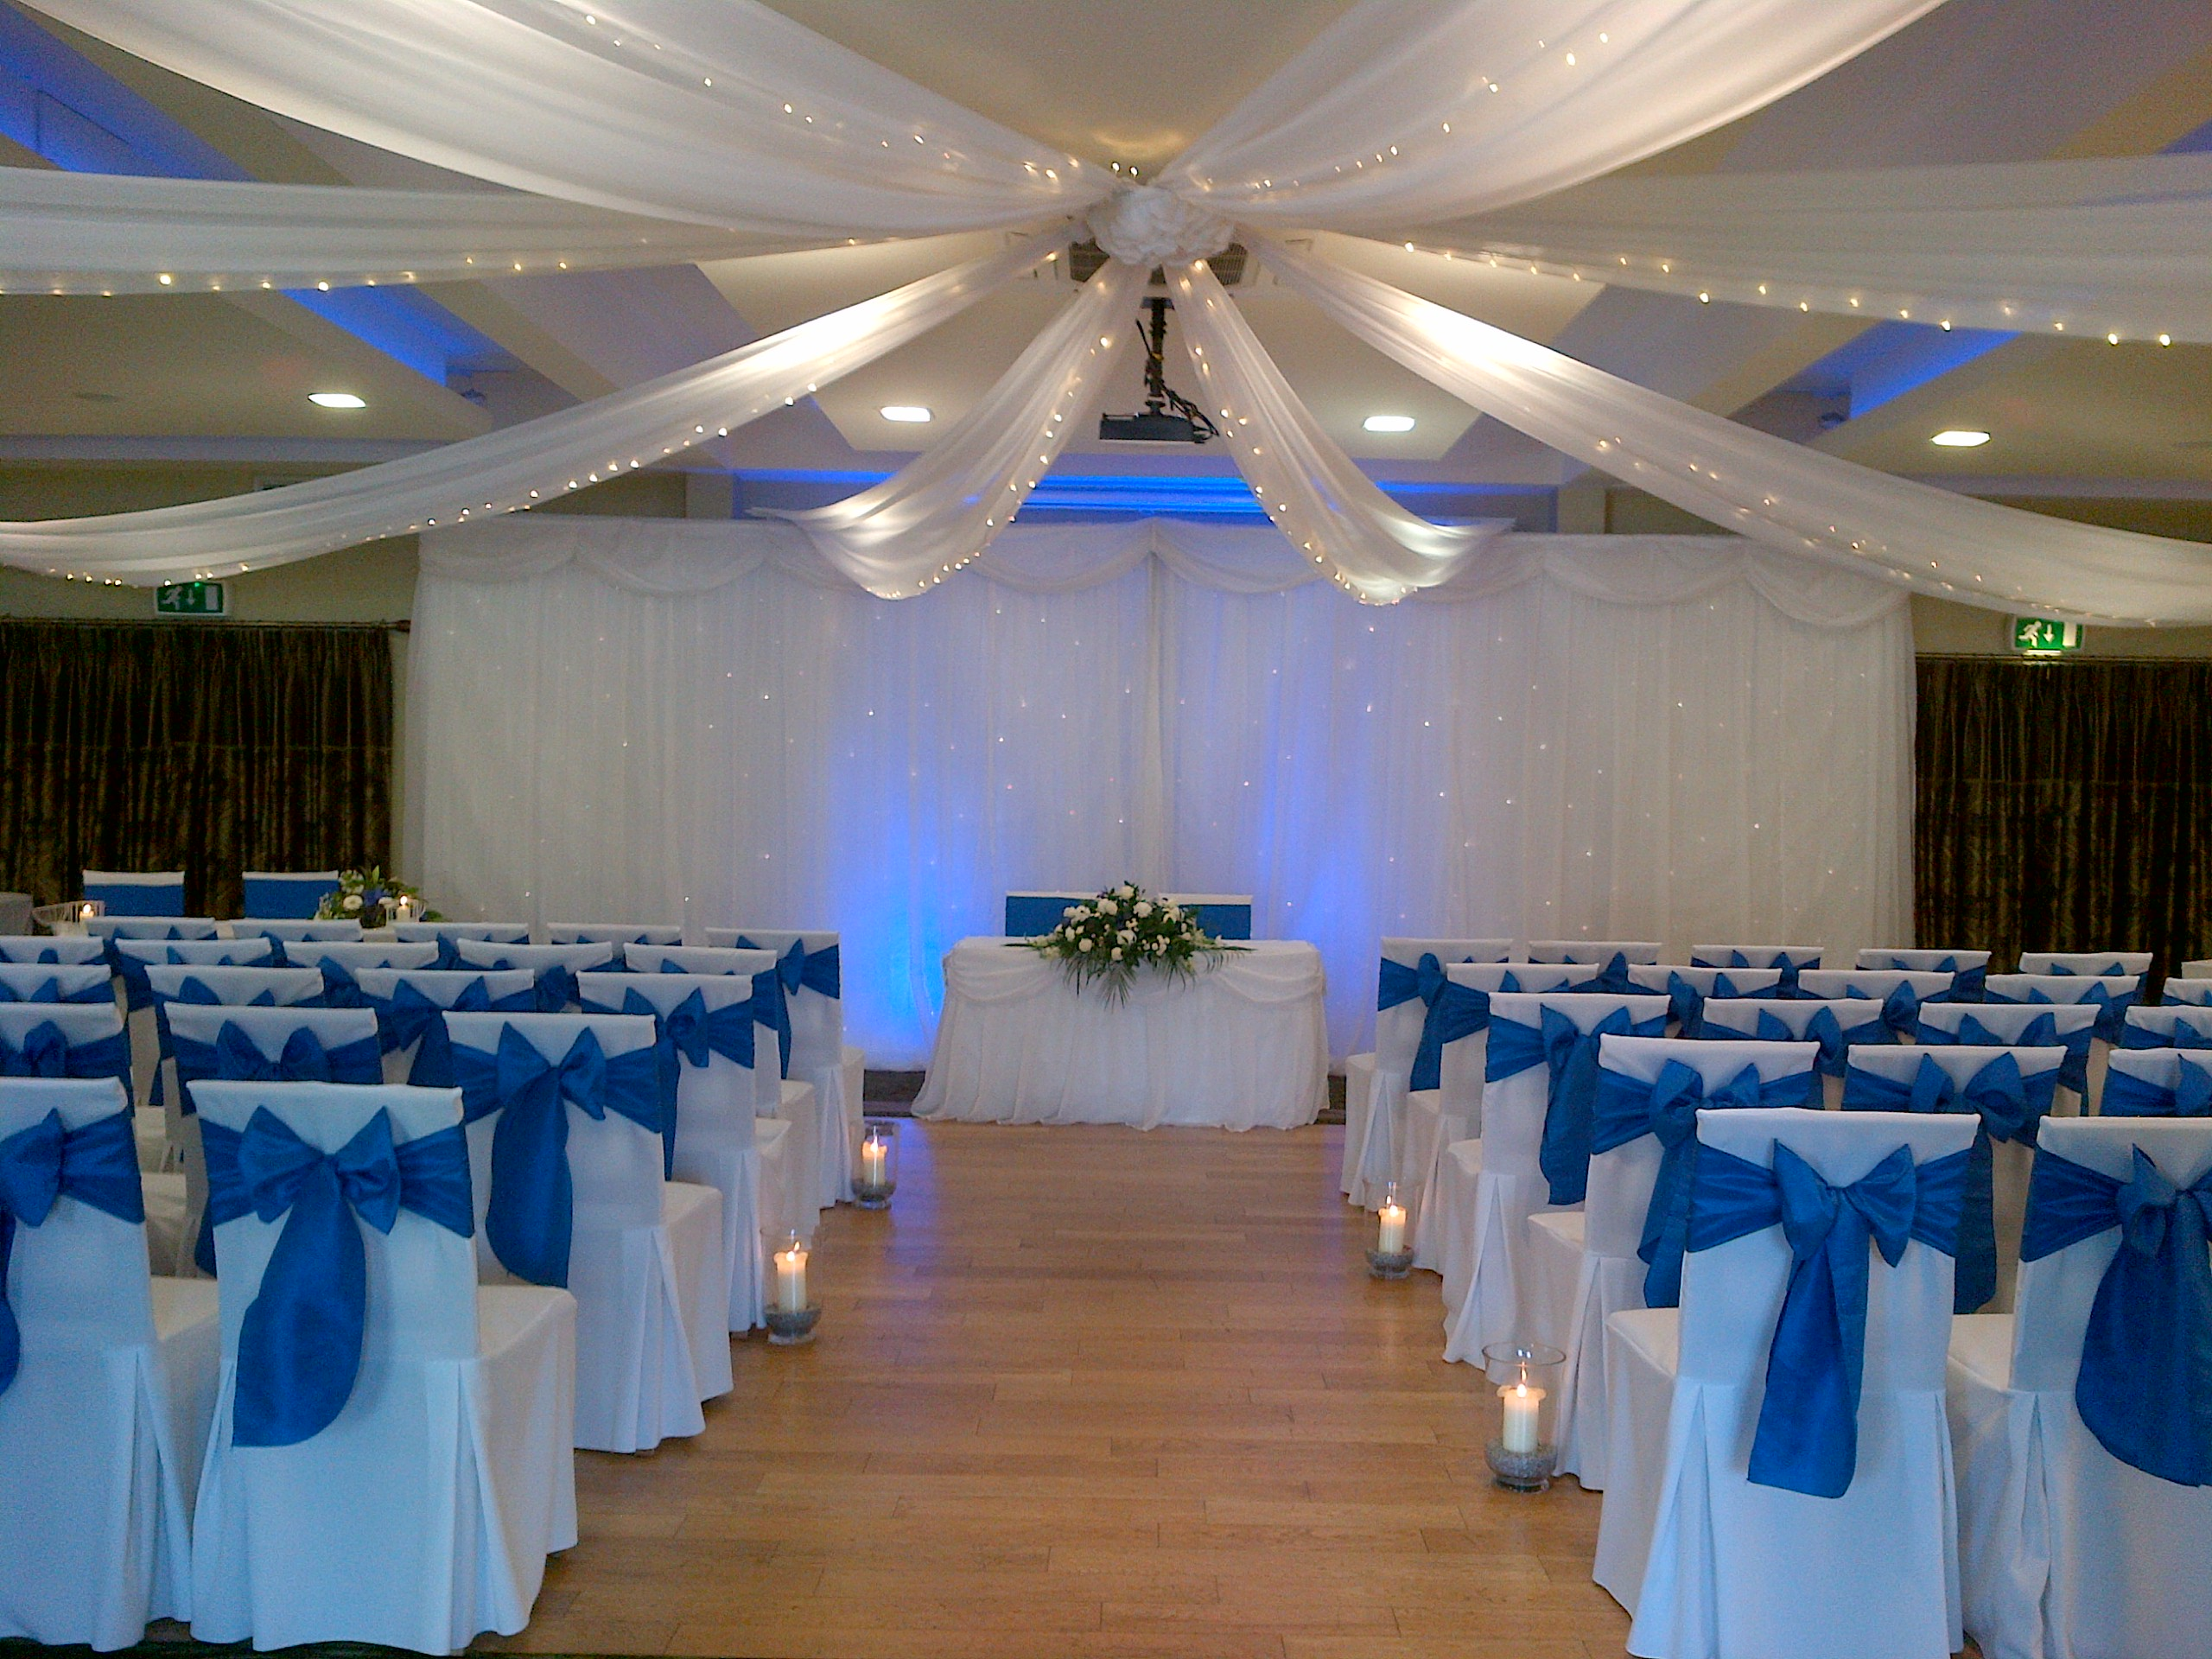 Tailor Made for Wyrebank Banqueting Suite